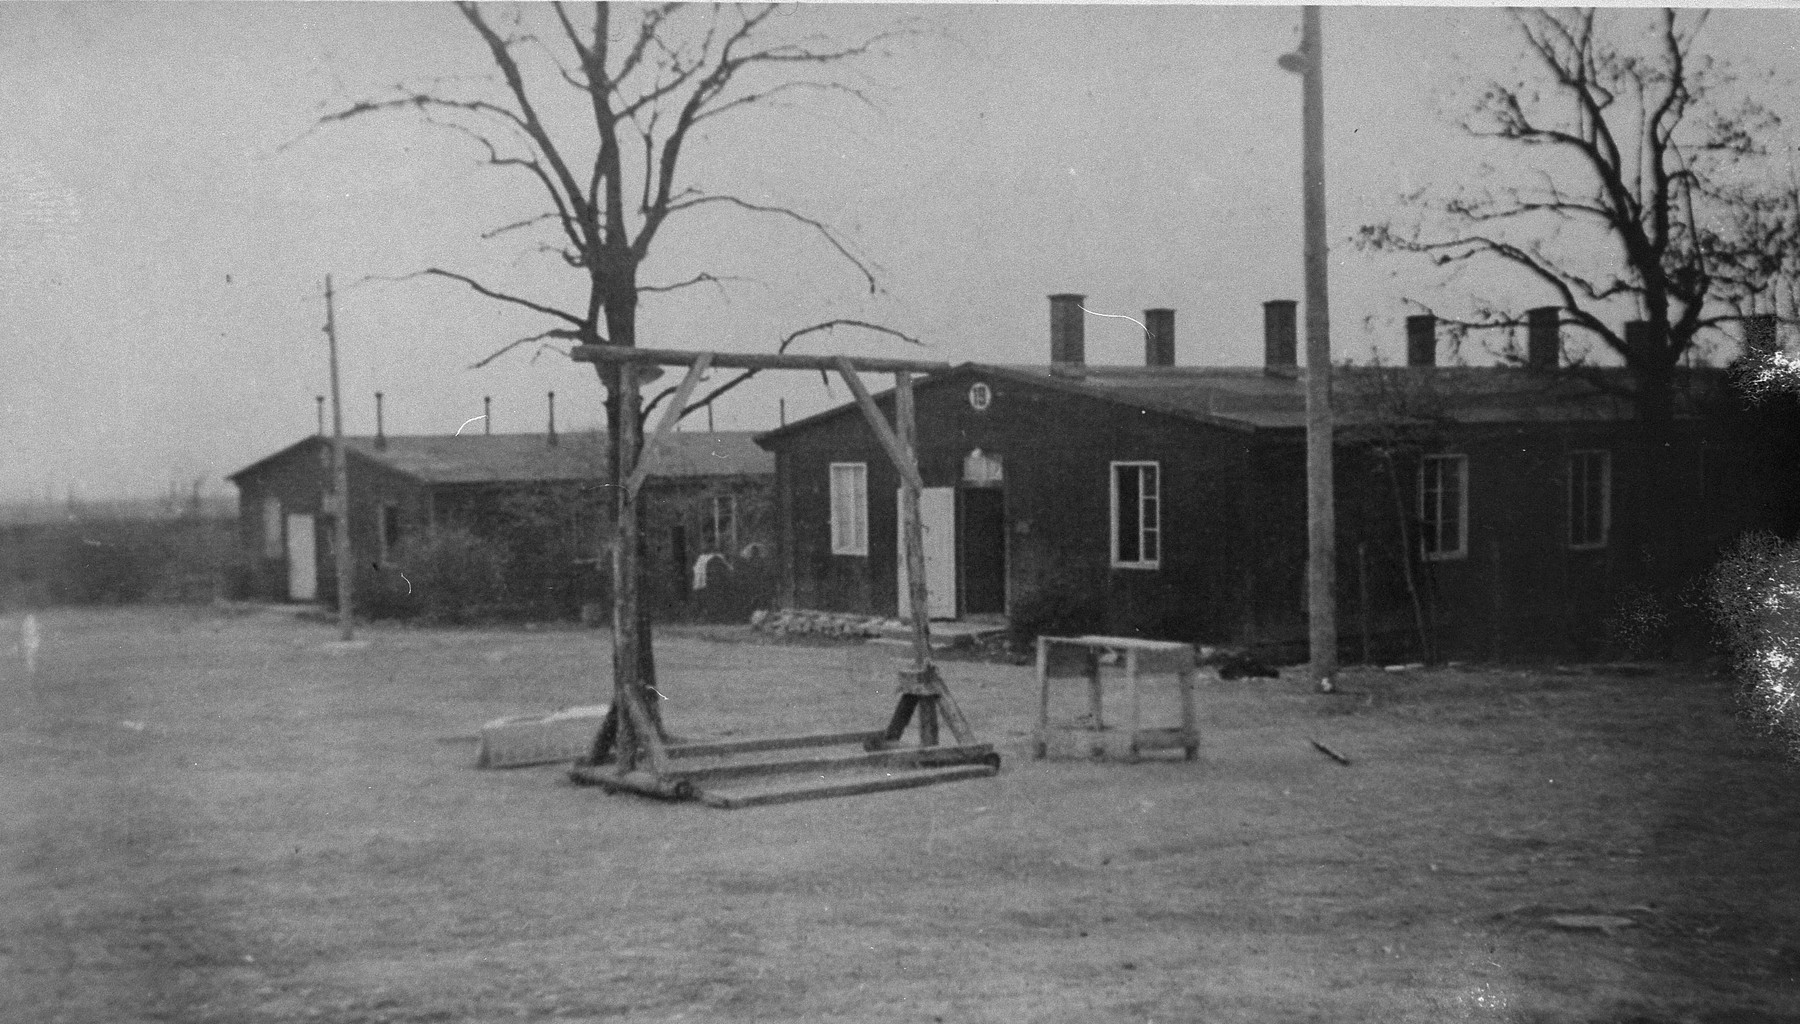 View of the gallows and barracks in the Ohrdruf concentration camp.